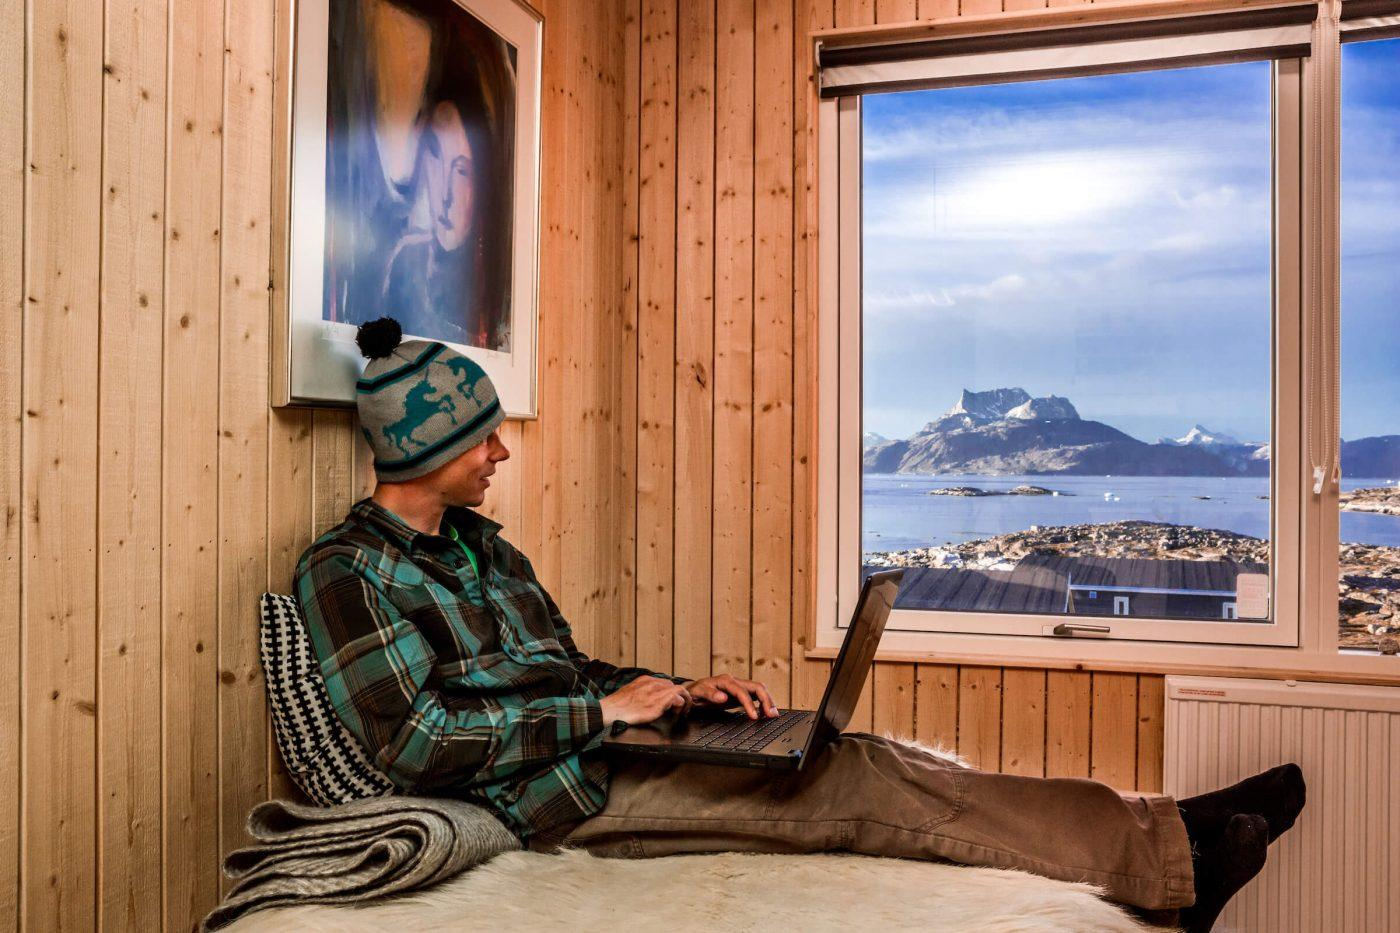 Traveler writes in his adventure log from the comfort of his bed at Inuk Hostels in Nuuk overlooking Nuuk Fjord and Sermitsiaq mountain. Photo by Raven Eye Photography - Visit Greenland